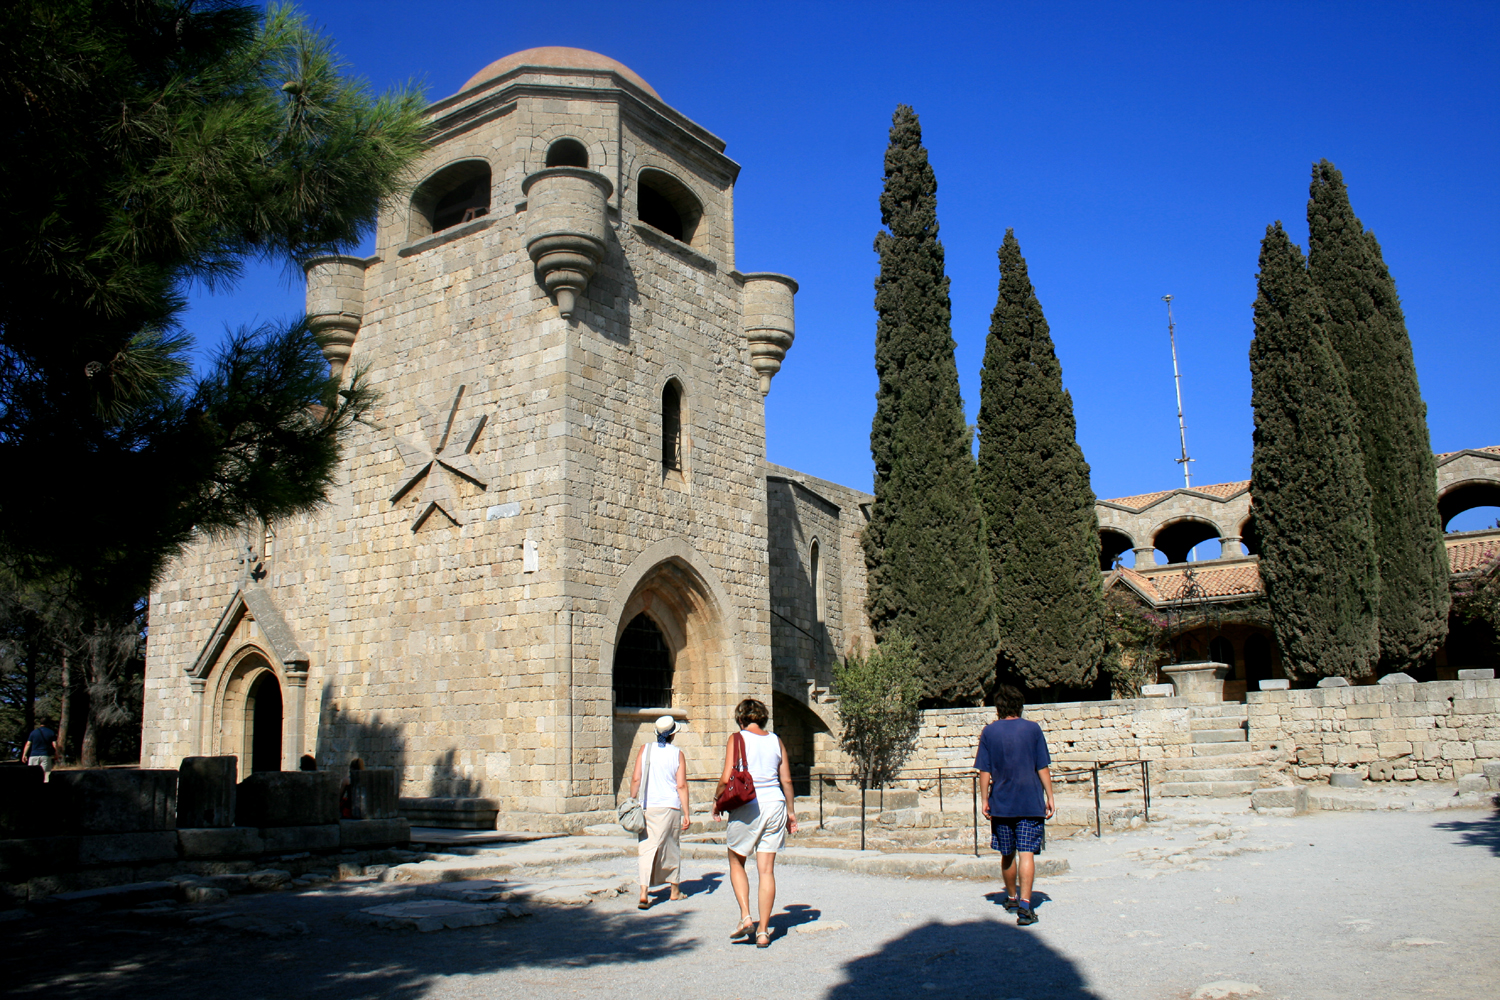 Visit Monastery of Filerimos in Rhodes: 15th Century Gothic-Style Monastery